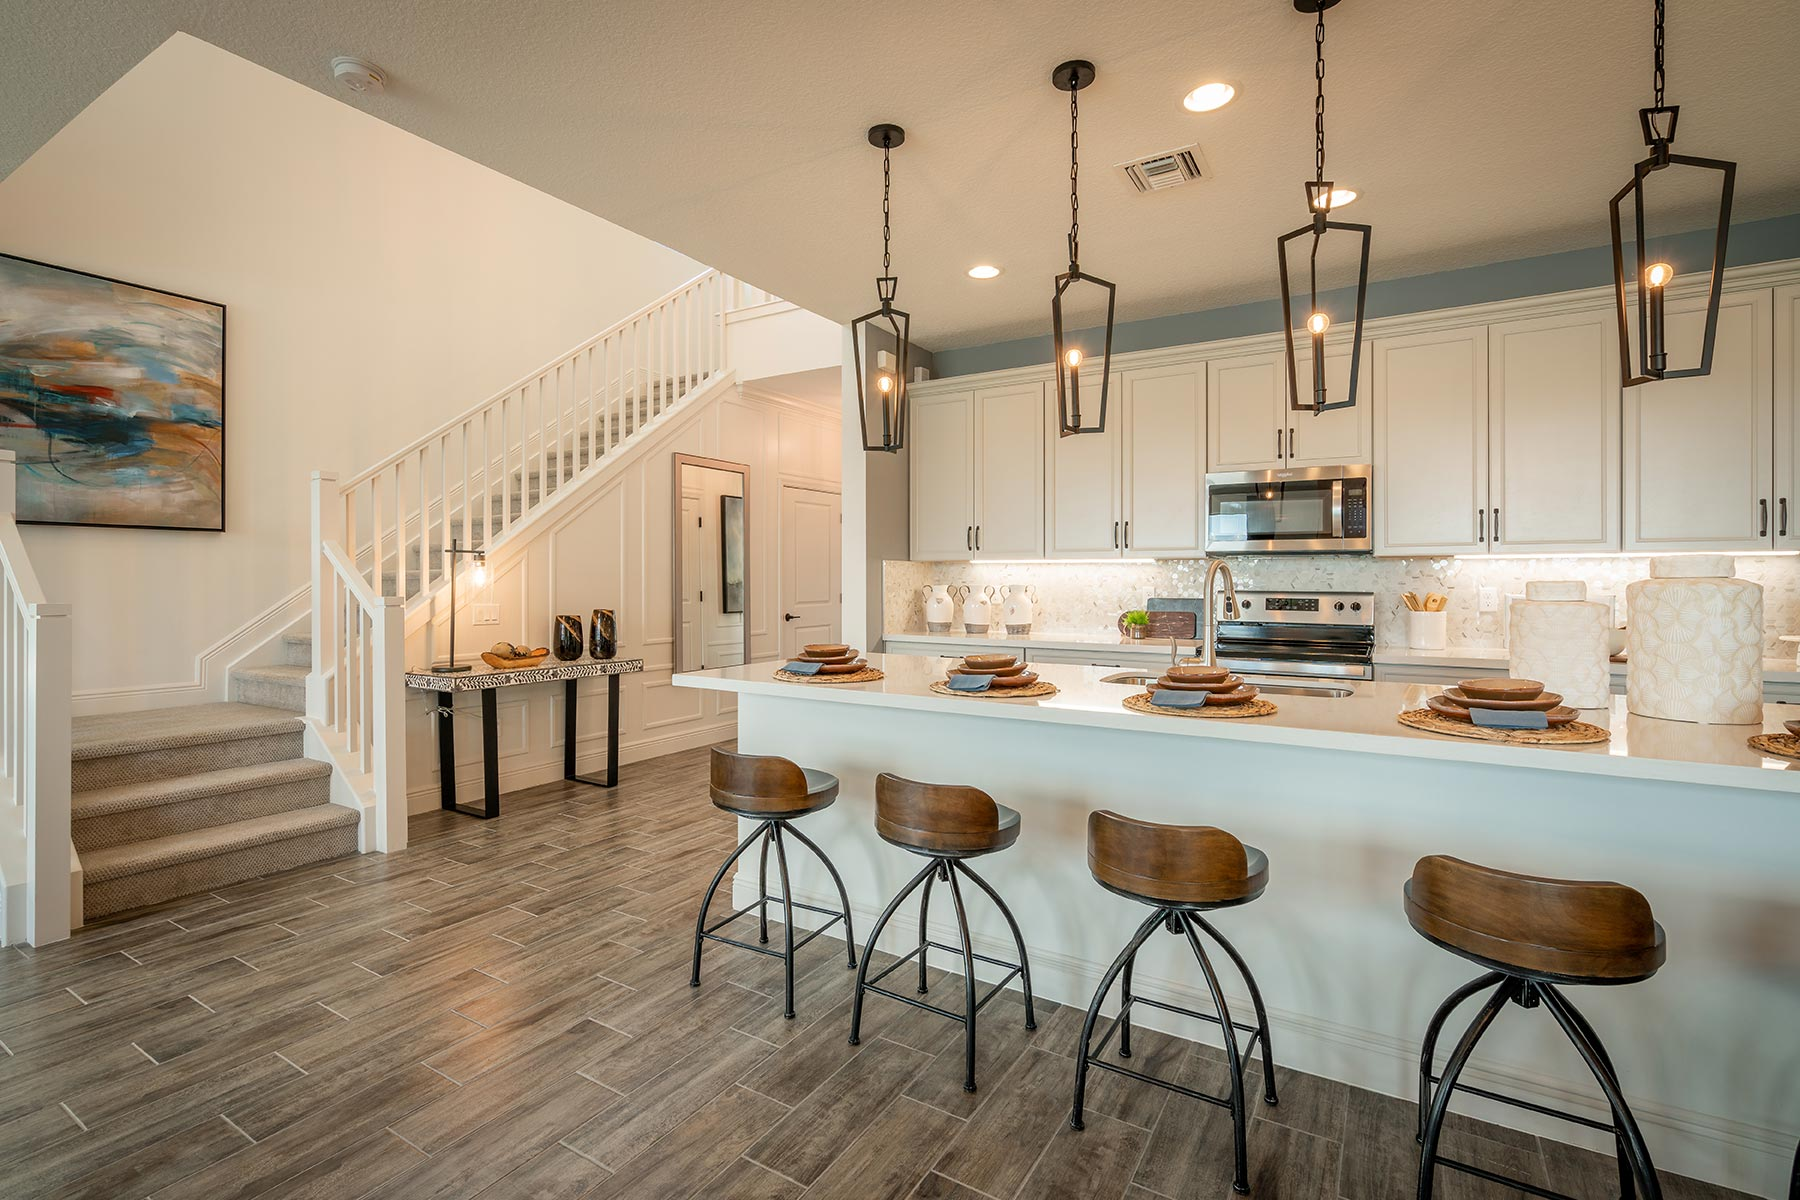 Oakley Plan Kitchen at Saddlewood in Lake Worth Florida by Mattamy Homes